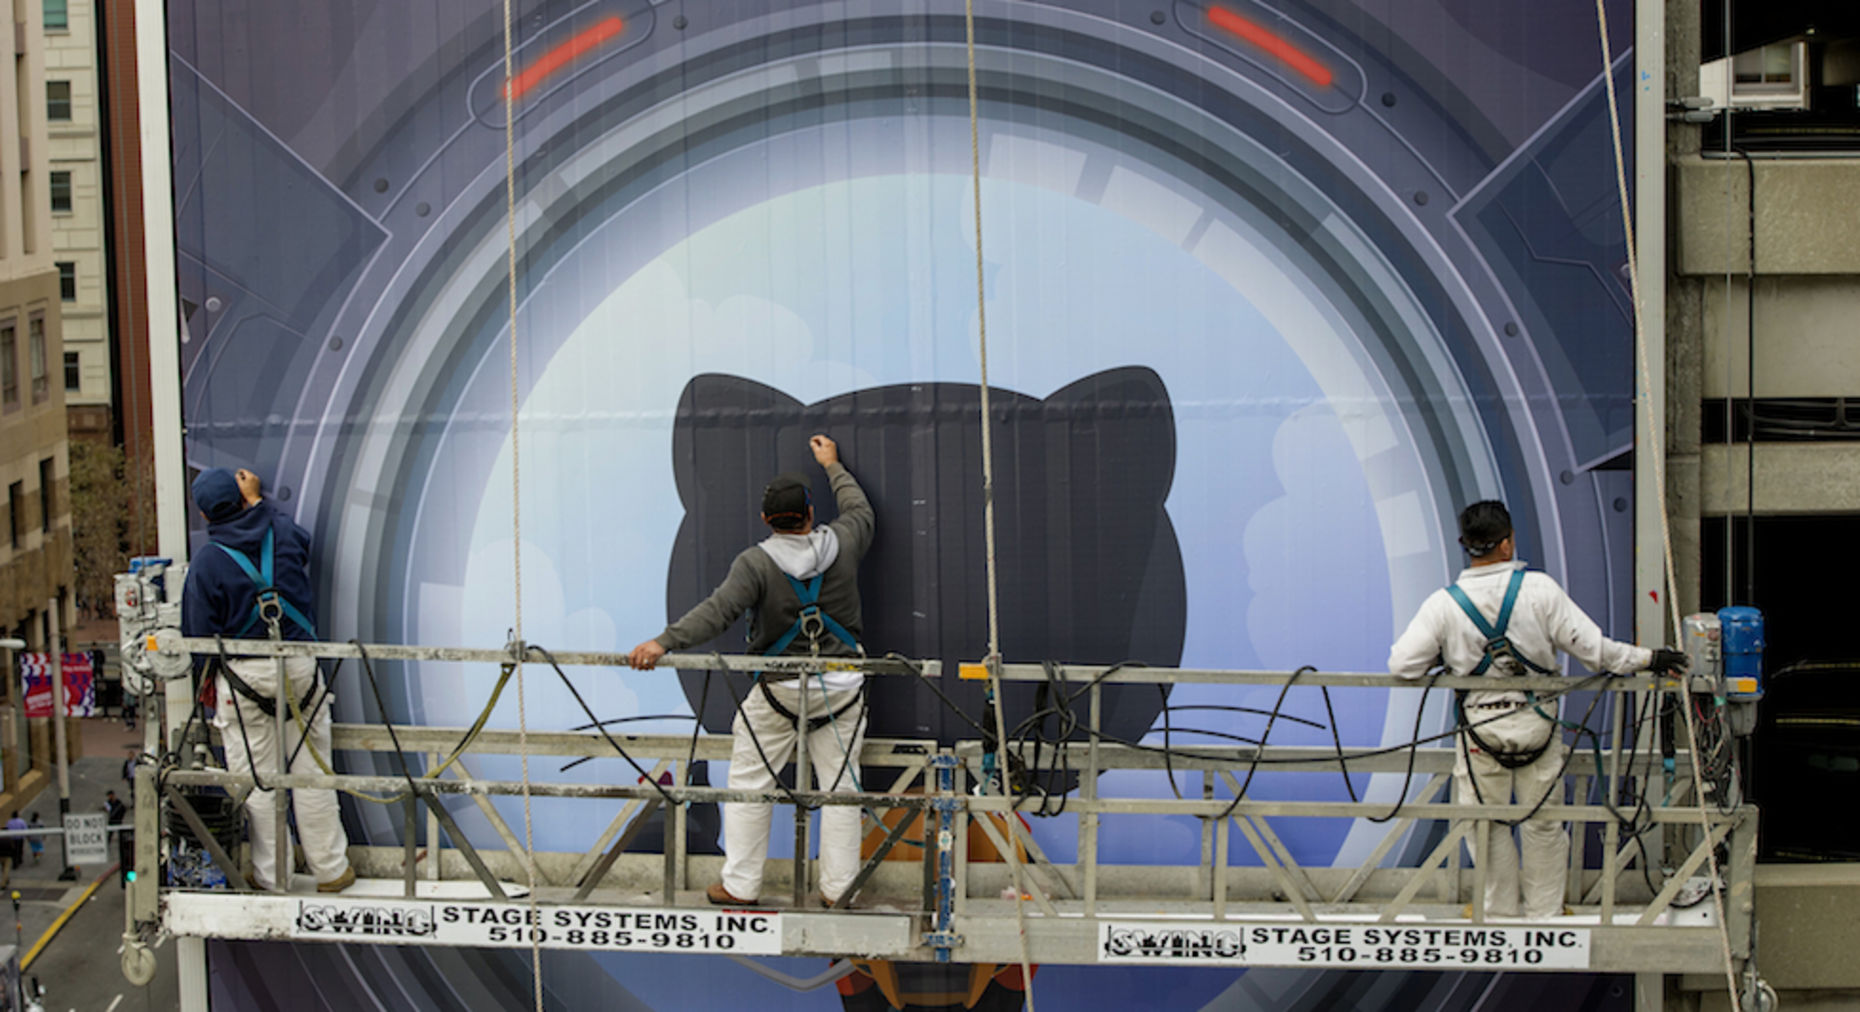 Workers install a billboard for GitHub. Photo by Bloomberg.